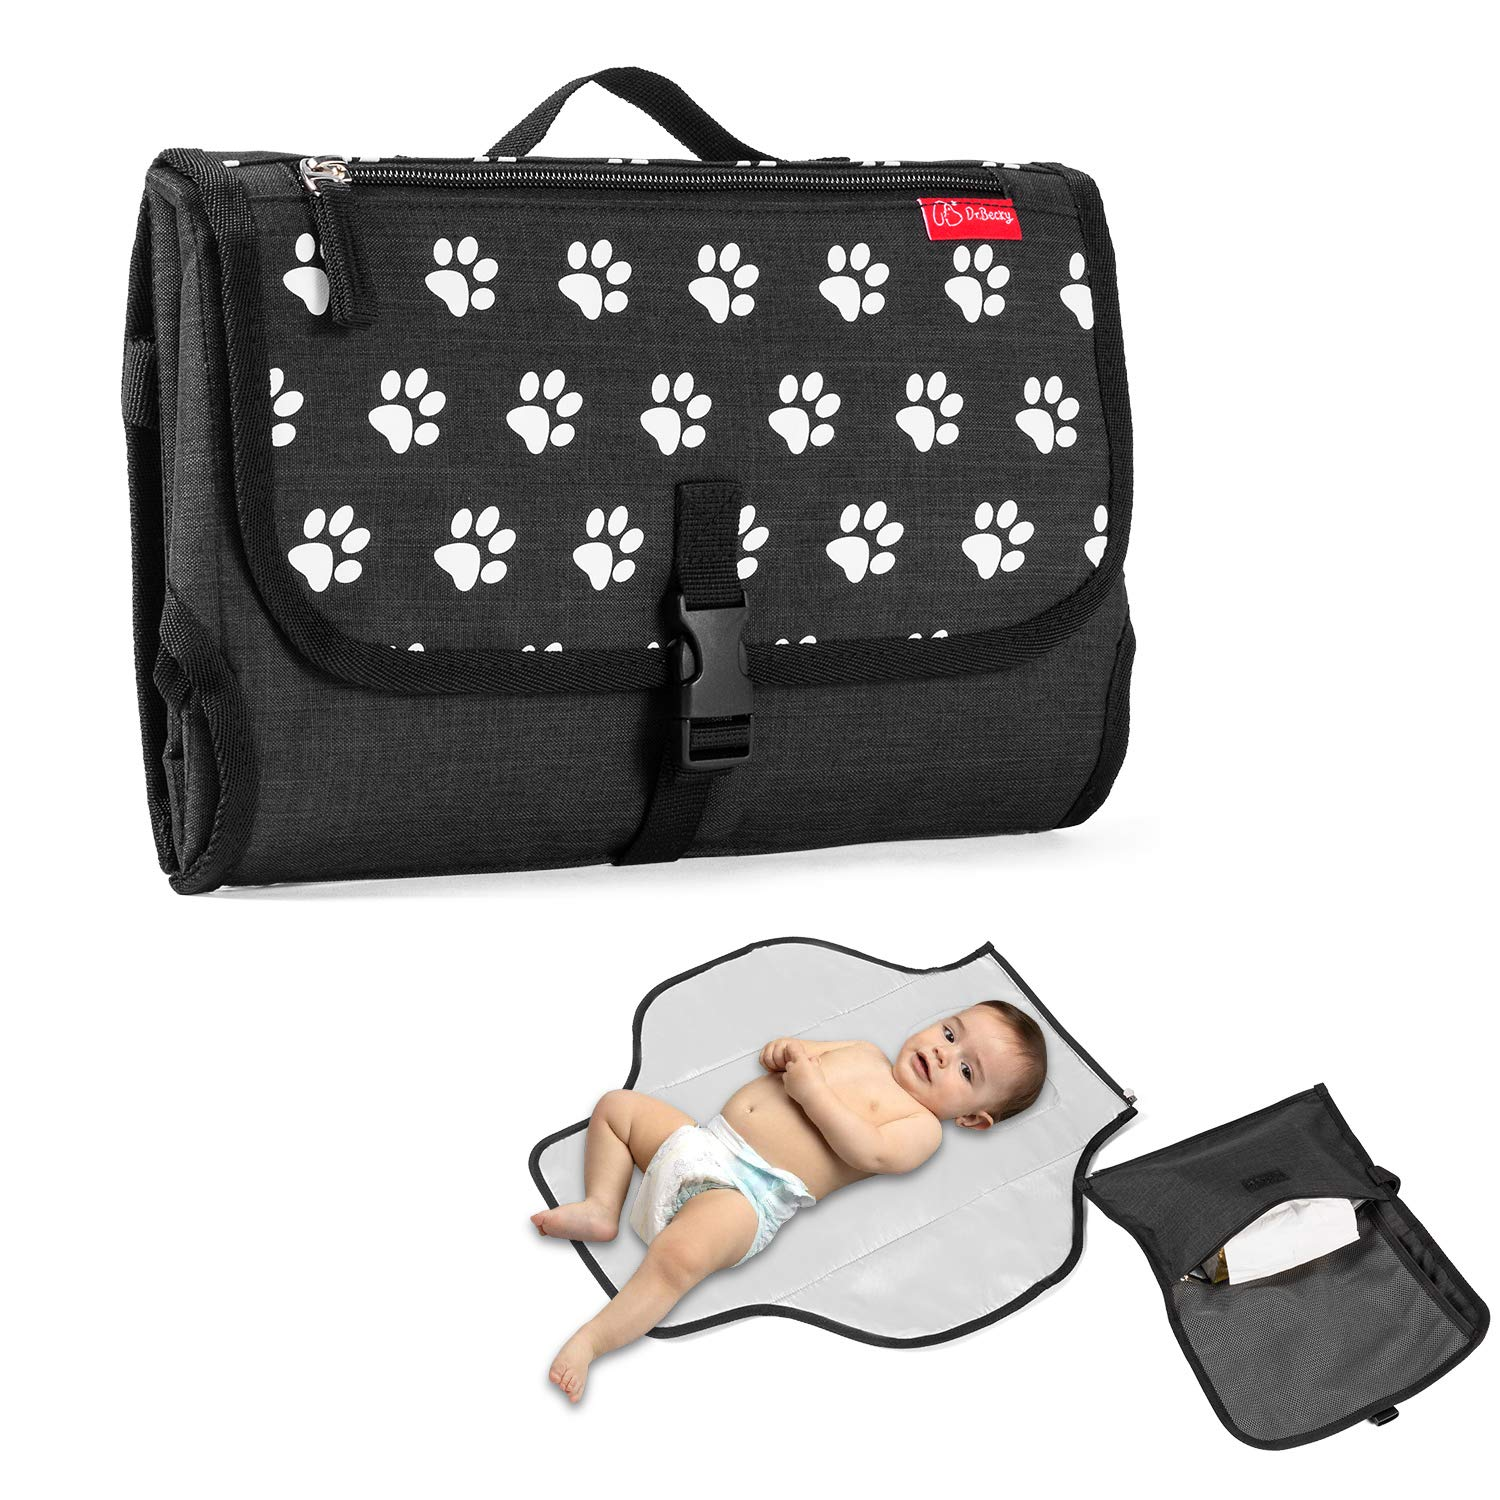 Baby Portable Changing Pad Diaper Bag Max 61% OFF Outstanding Bla Mat Travel pad